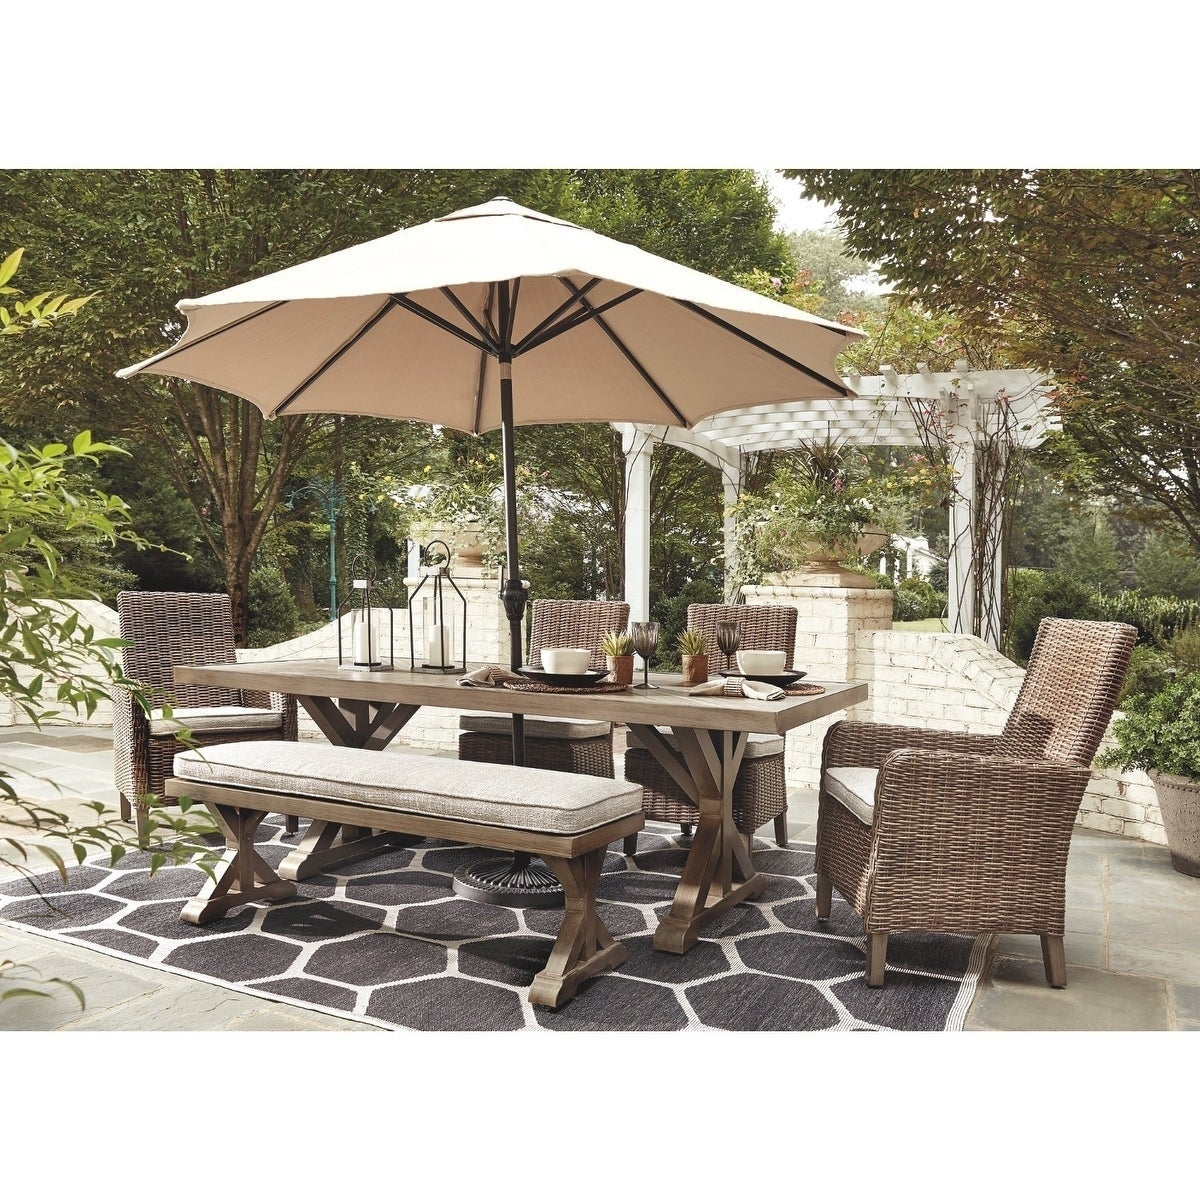 Dining Table With Umbrella Option